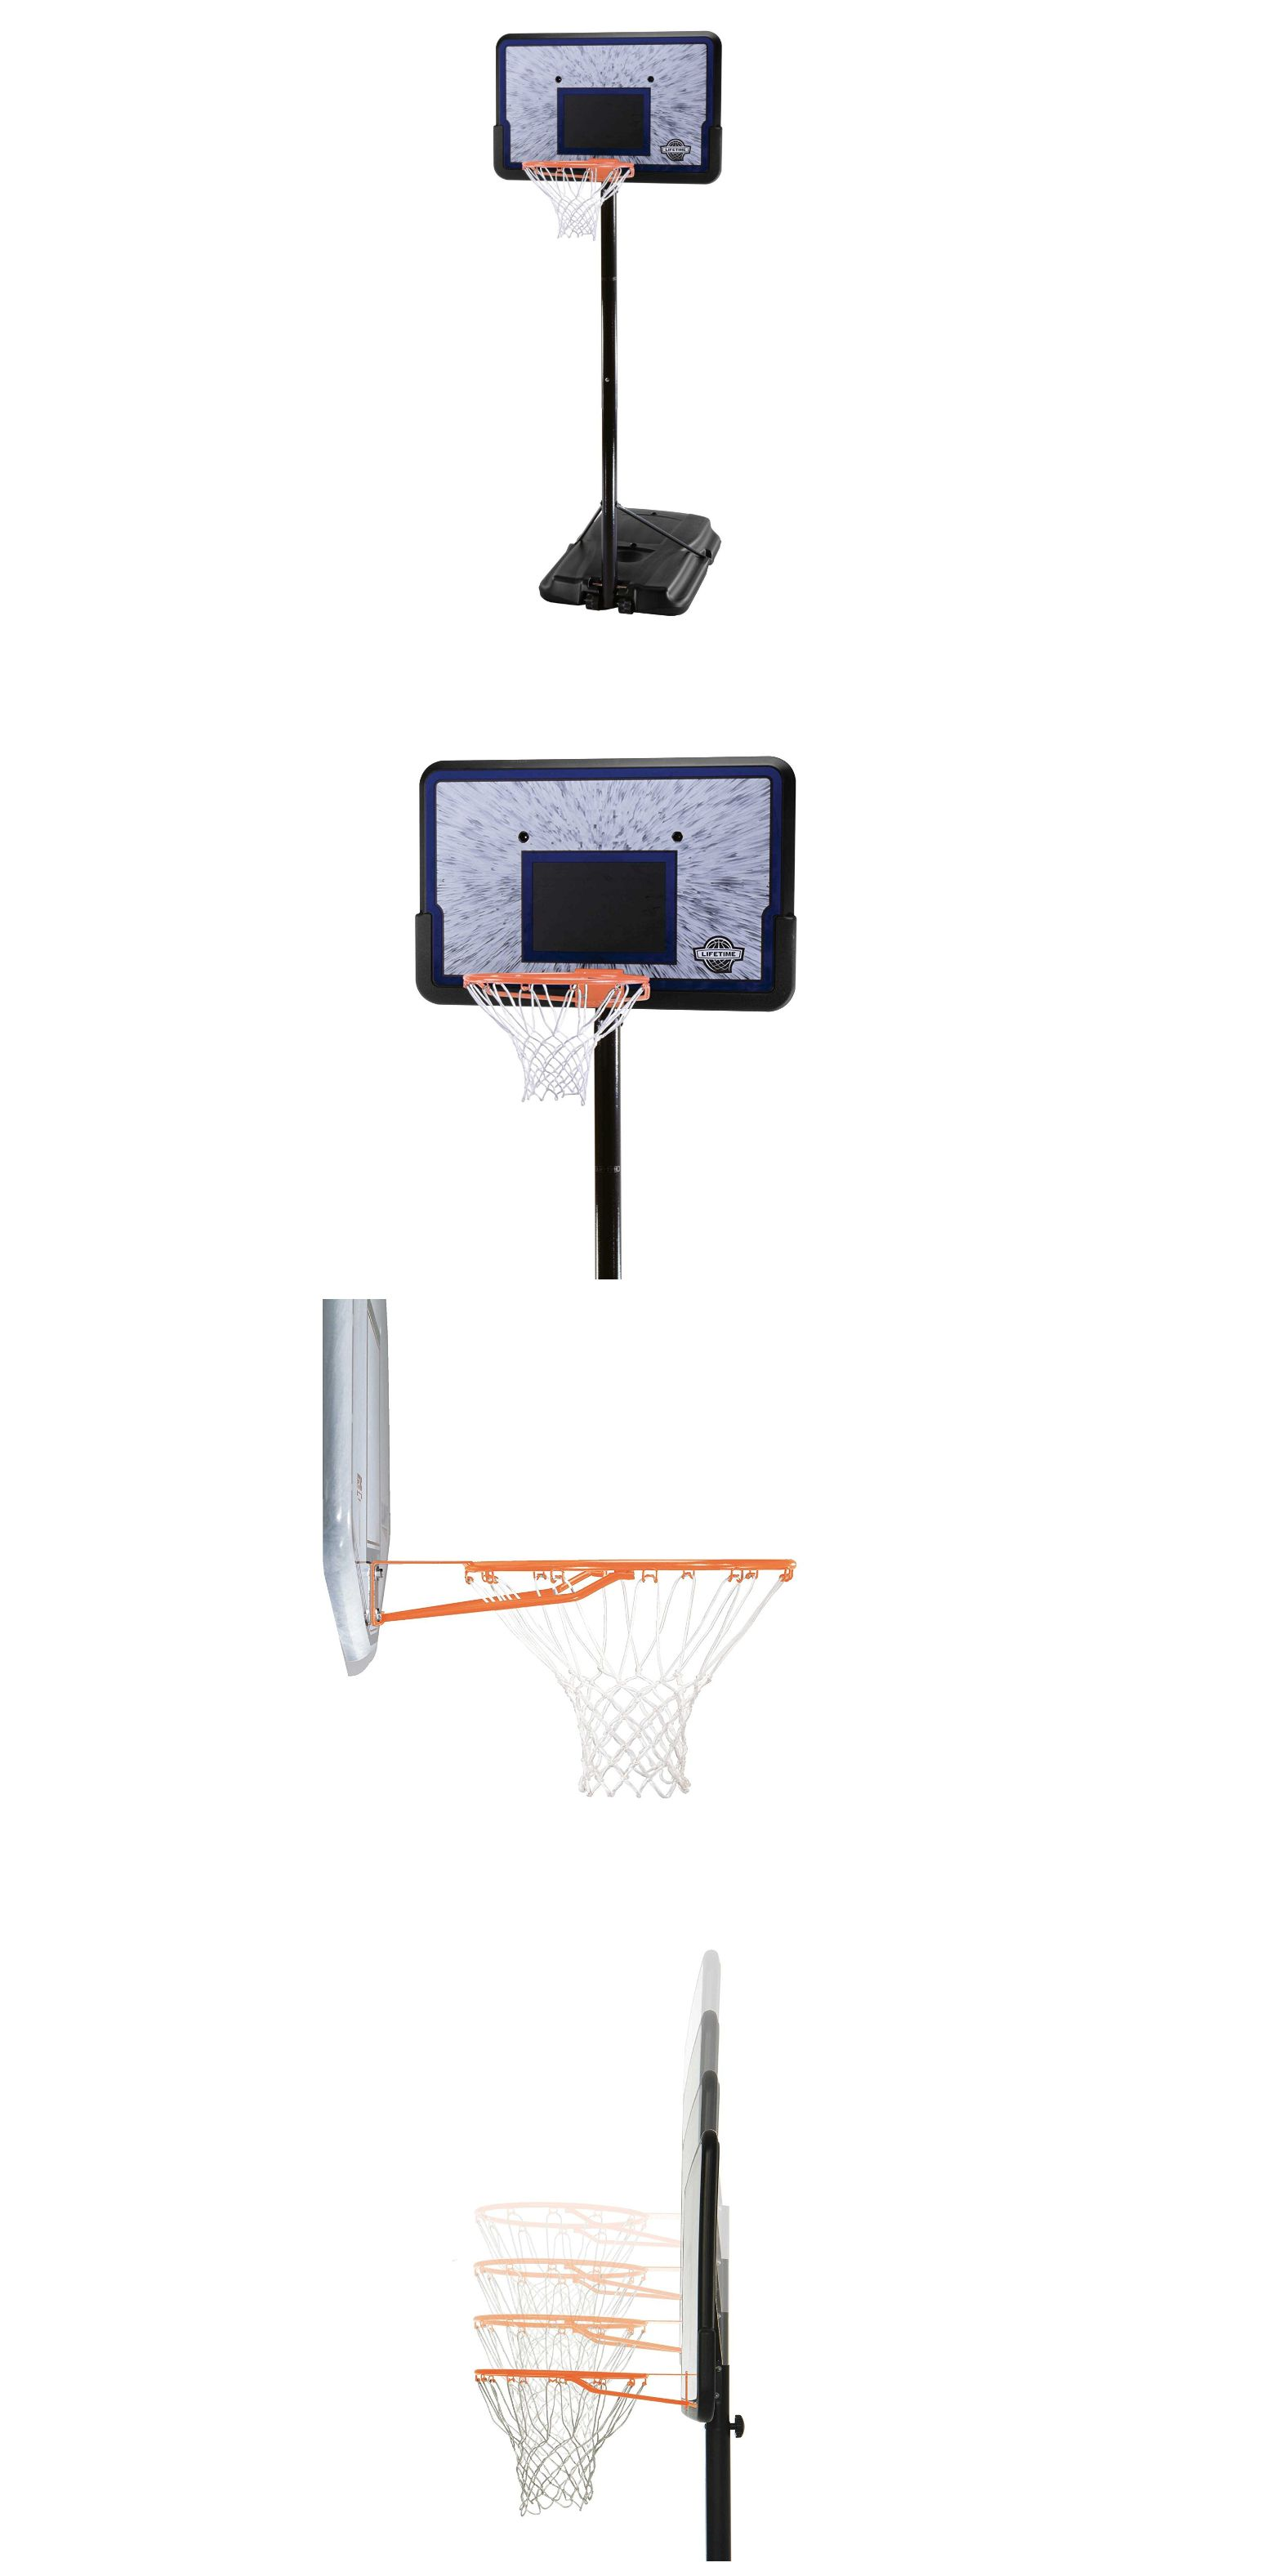 backboard systems 21196 portable lifetime basketball goal 44 youth